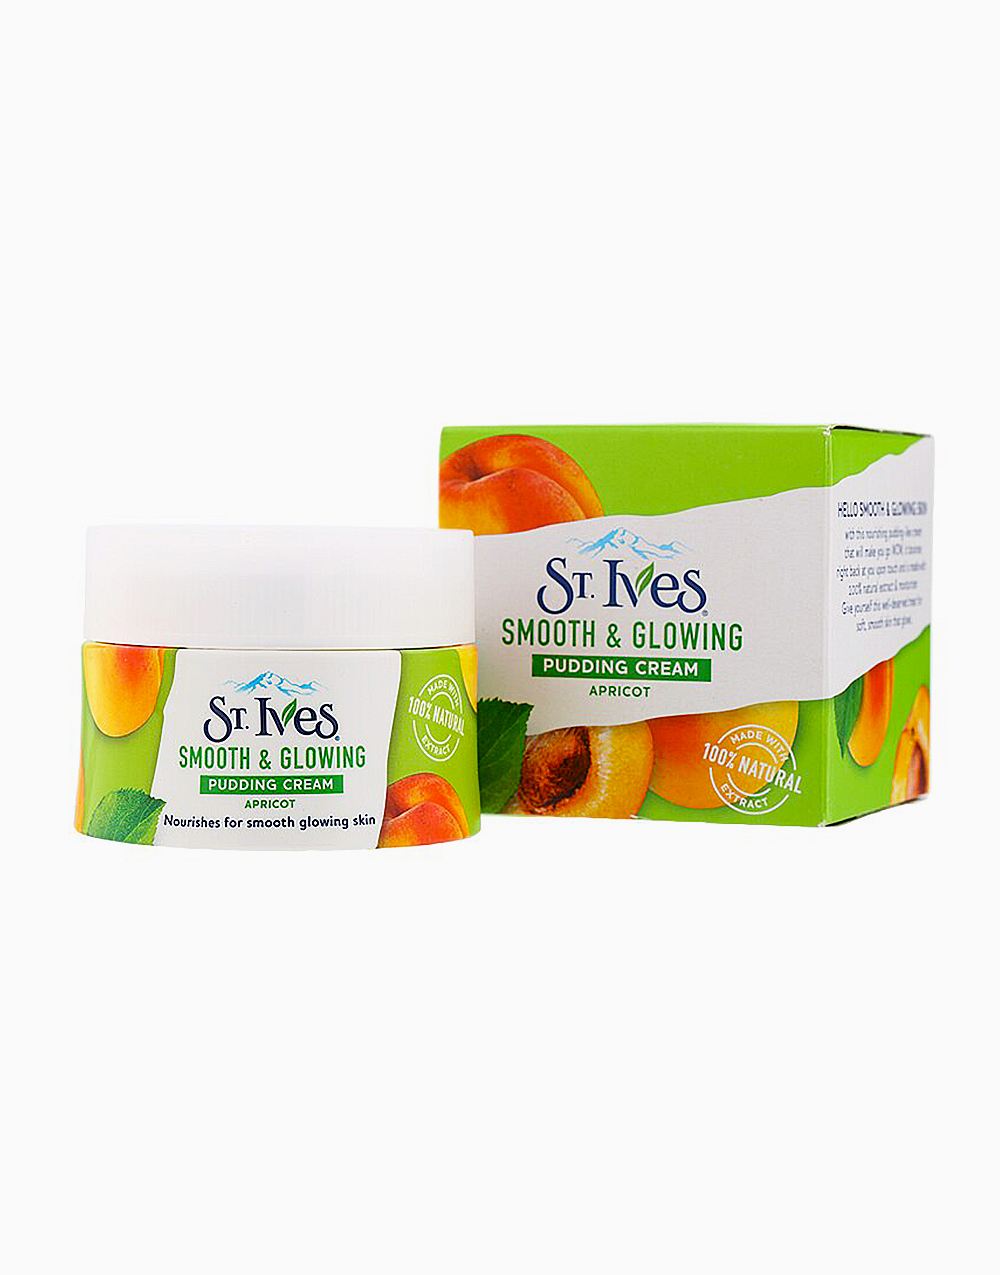 St. Ives Pudding Cream Smooth And Glowing Apricot (45G) by Unilever Beauty